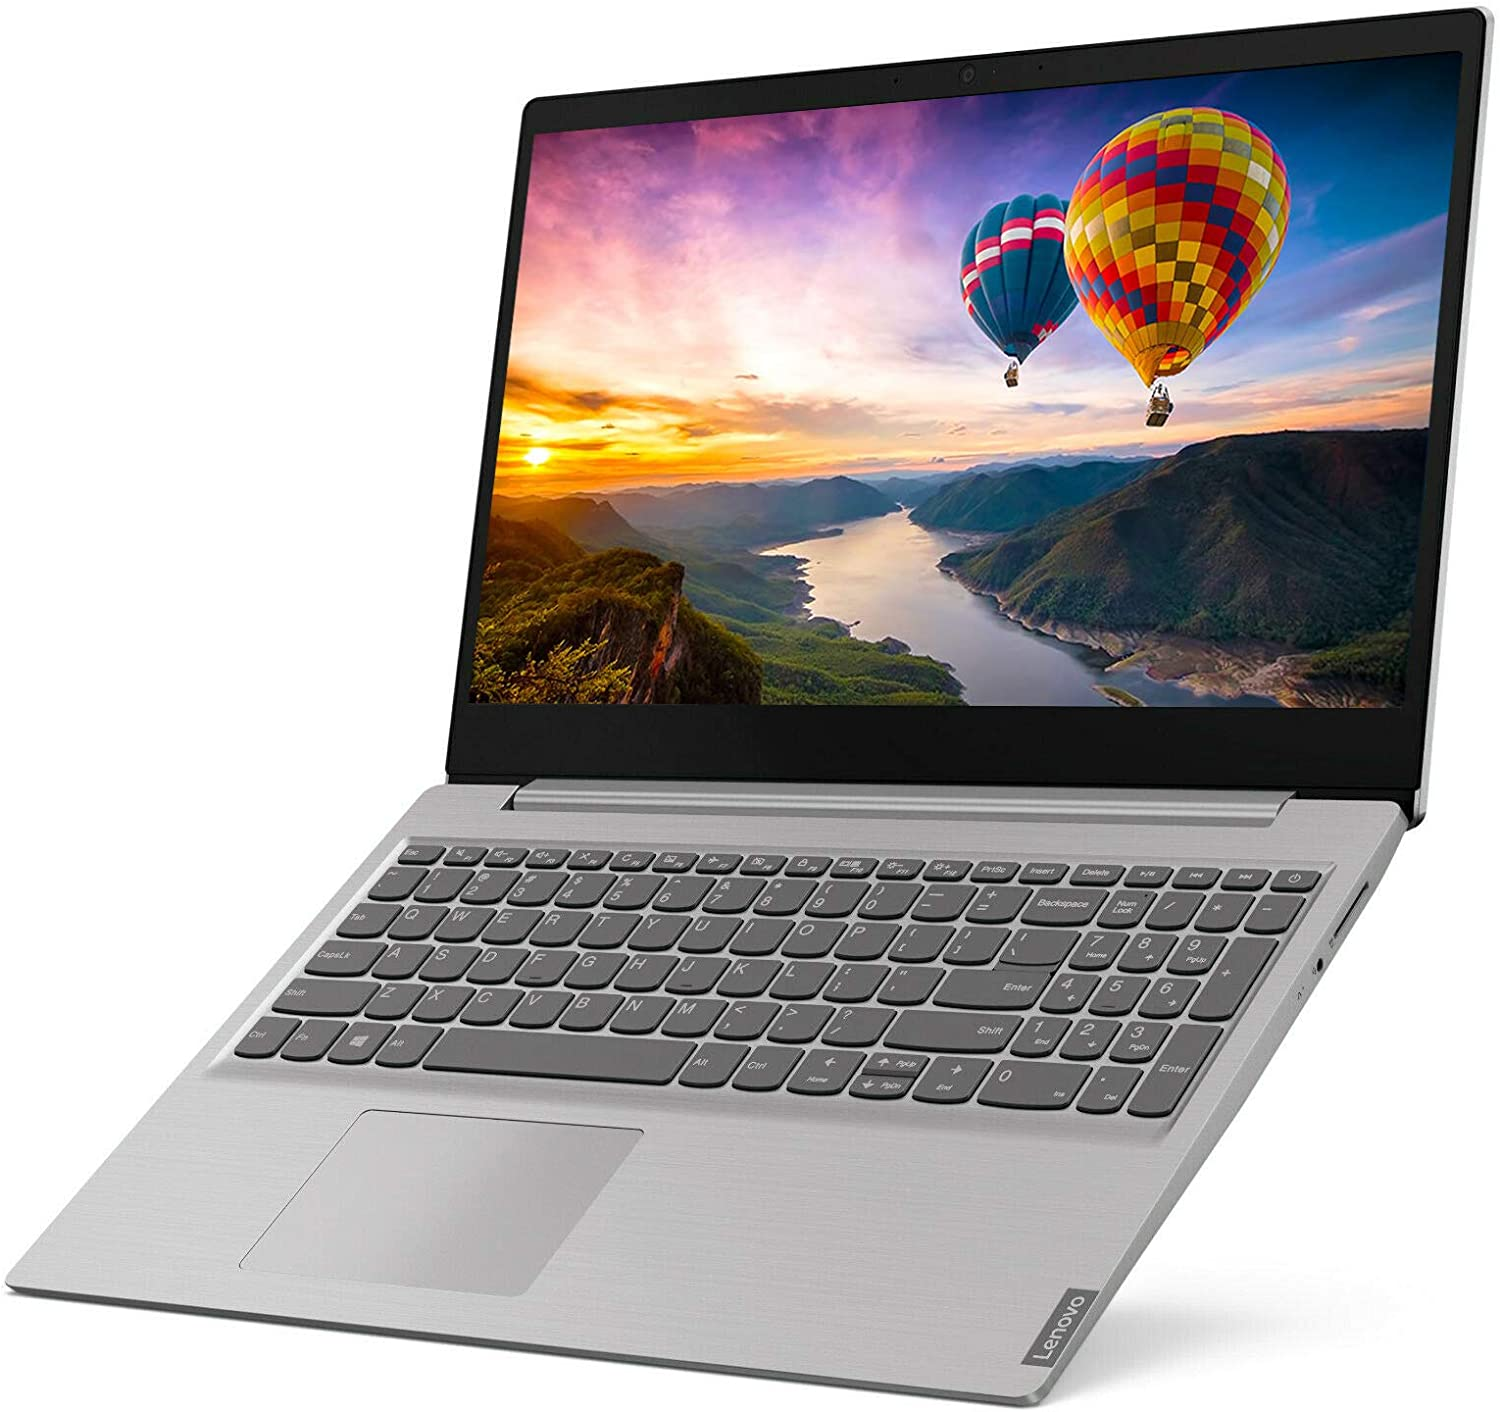 "Flagship Lenovo IdeaPad S145 15.6"" HD Sleek&Light Laptop PC, Anti-Glare Narrow Bezel Screen, Intel 2-Core 4205U 1.8GHz 8GB RAM 128GB PCIe SSD + 1TB HDD WiFi+BT Webcam HDMI Dolby Audio Win 10"